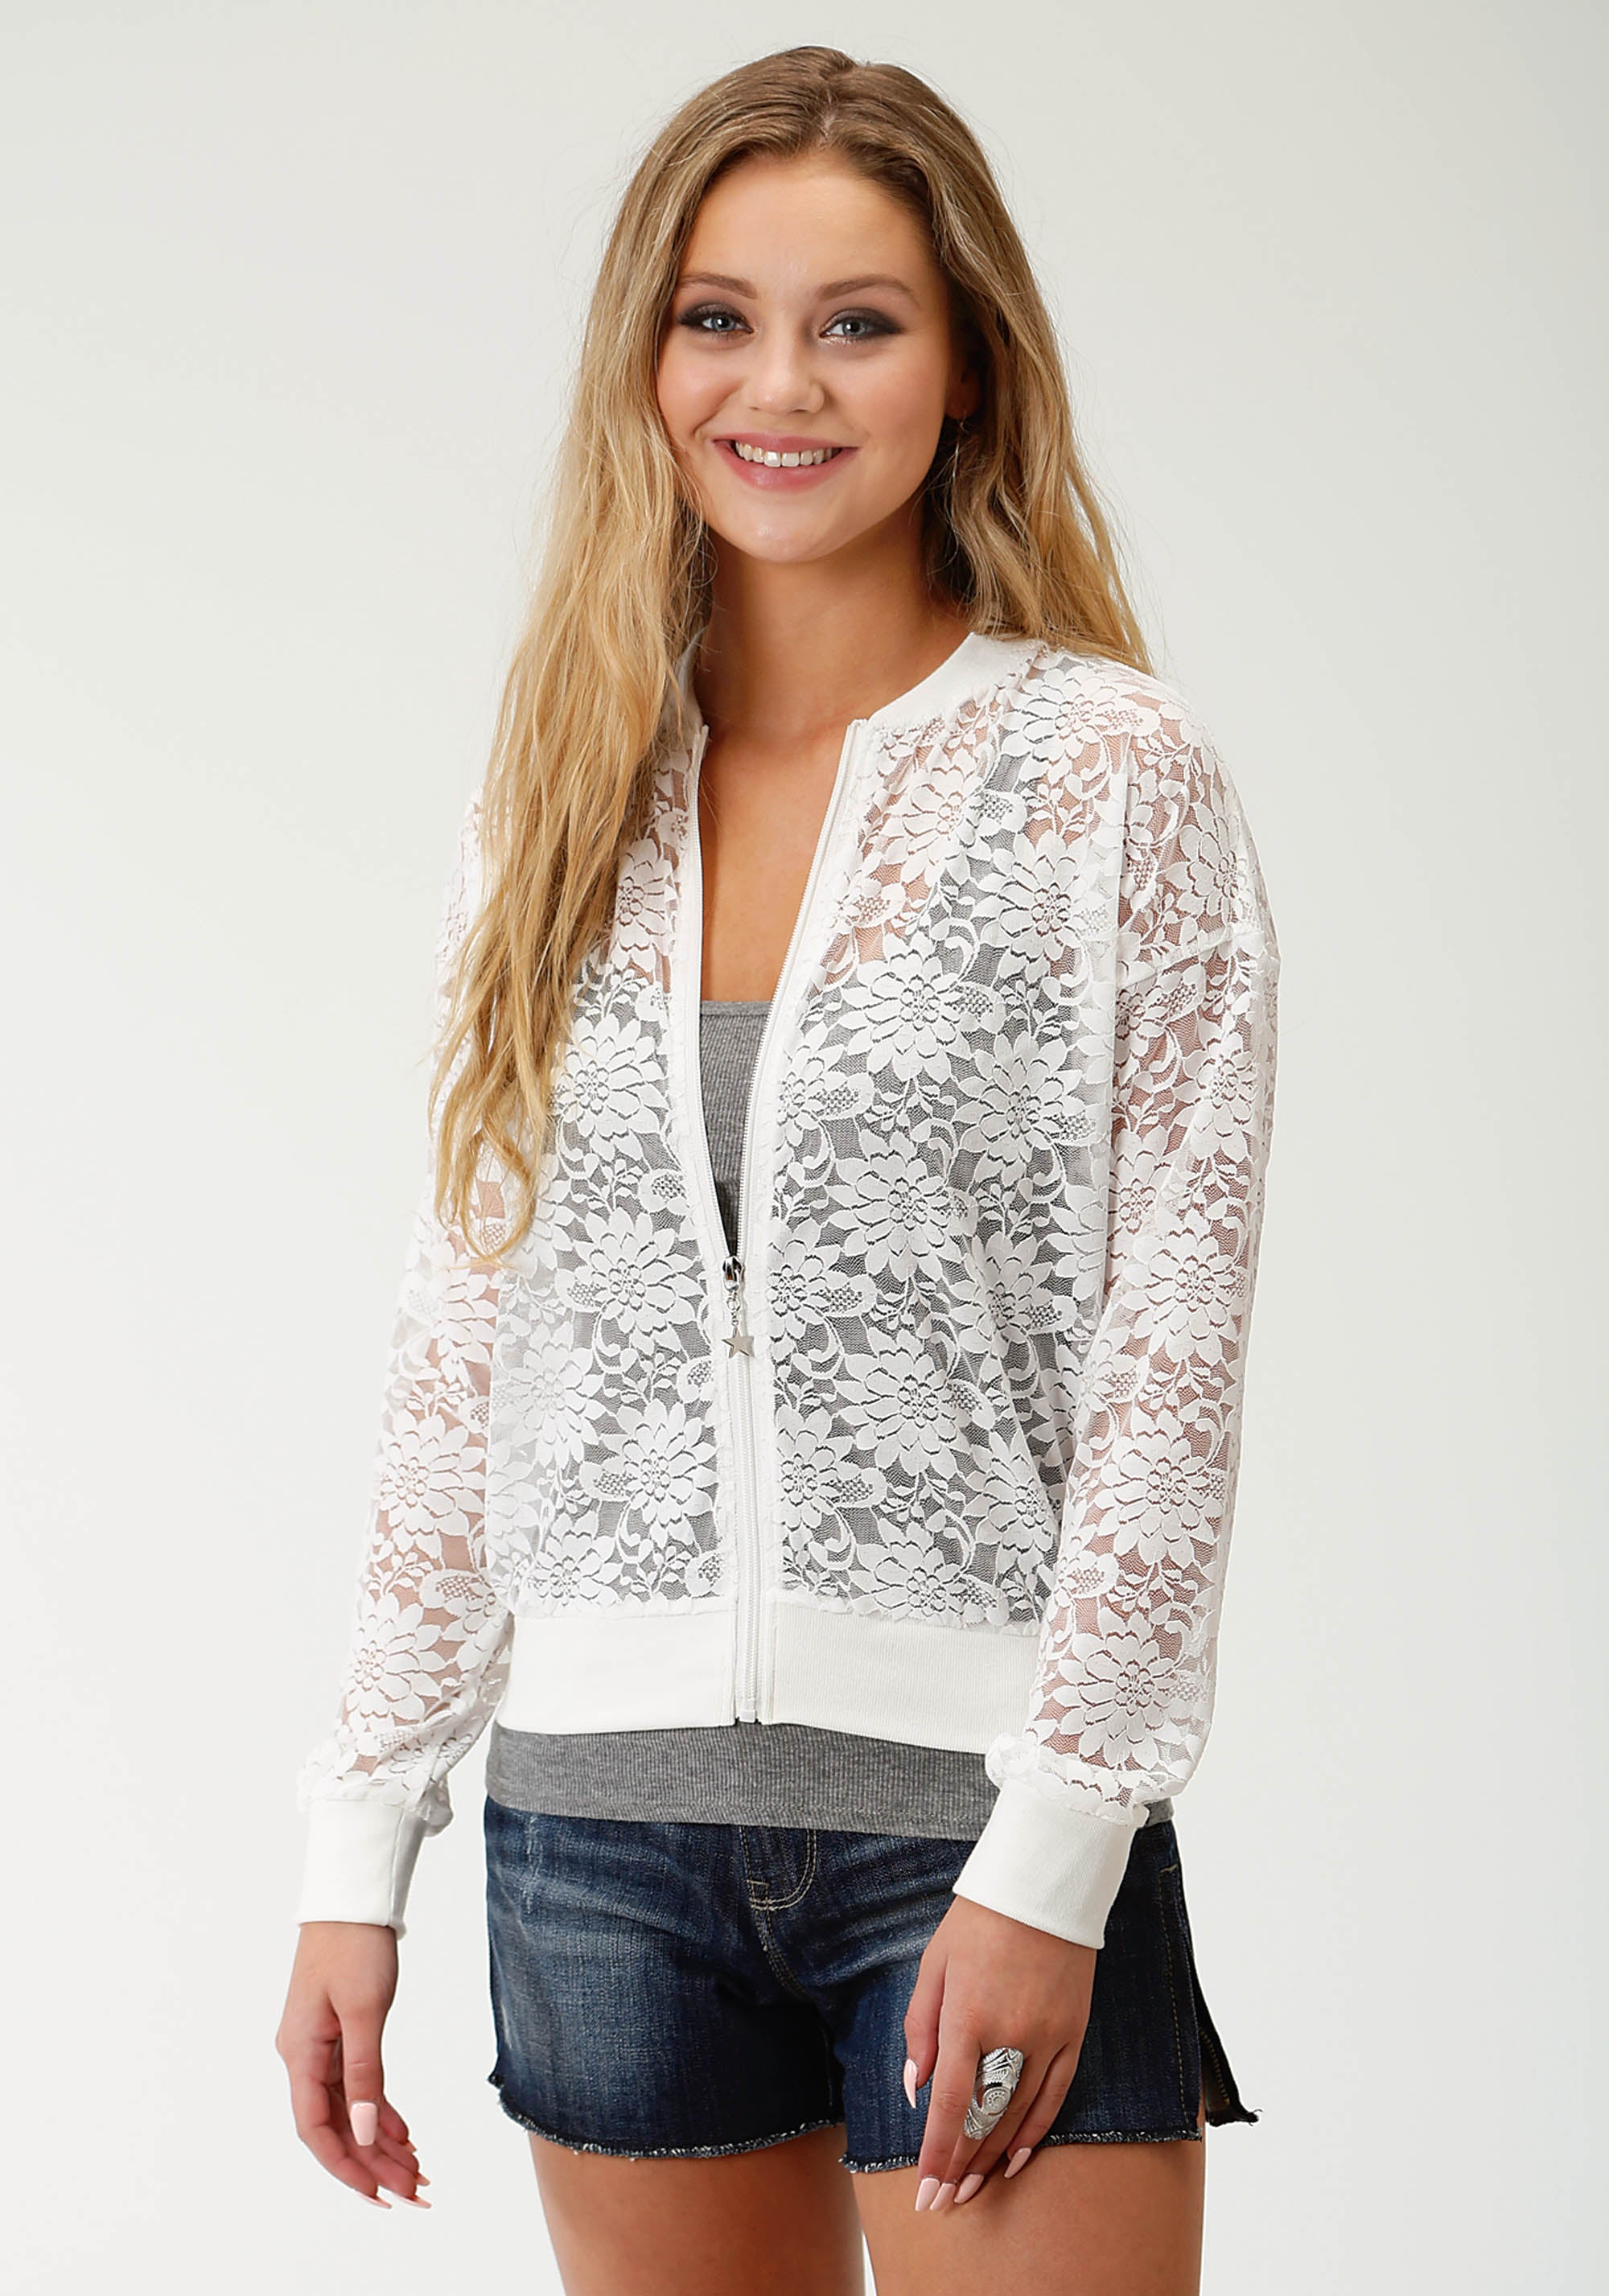 ROPER WOMENS WHITE 3023 ALLOVER LACE JACKET FIVE STAR COLLECTION- SPRING II JACKET